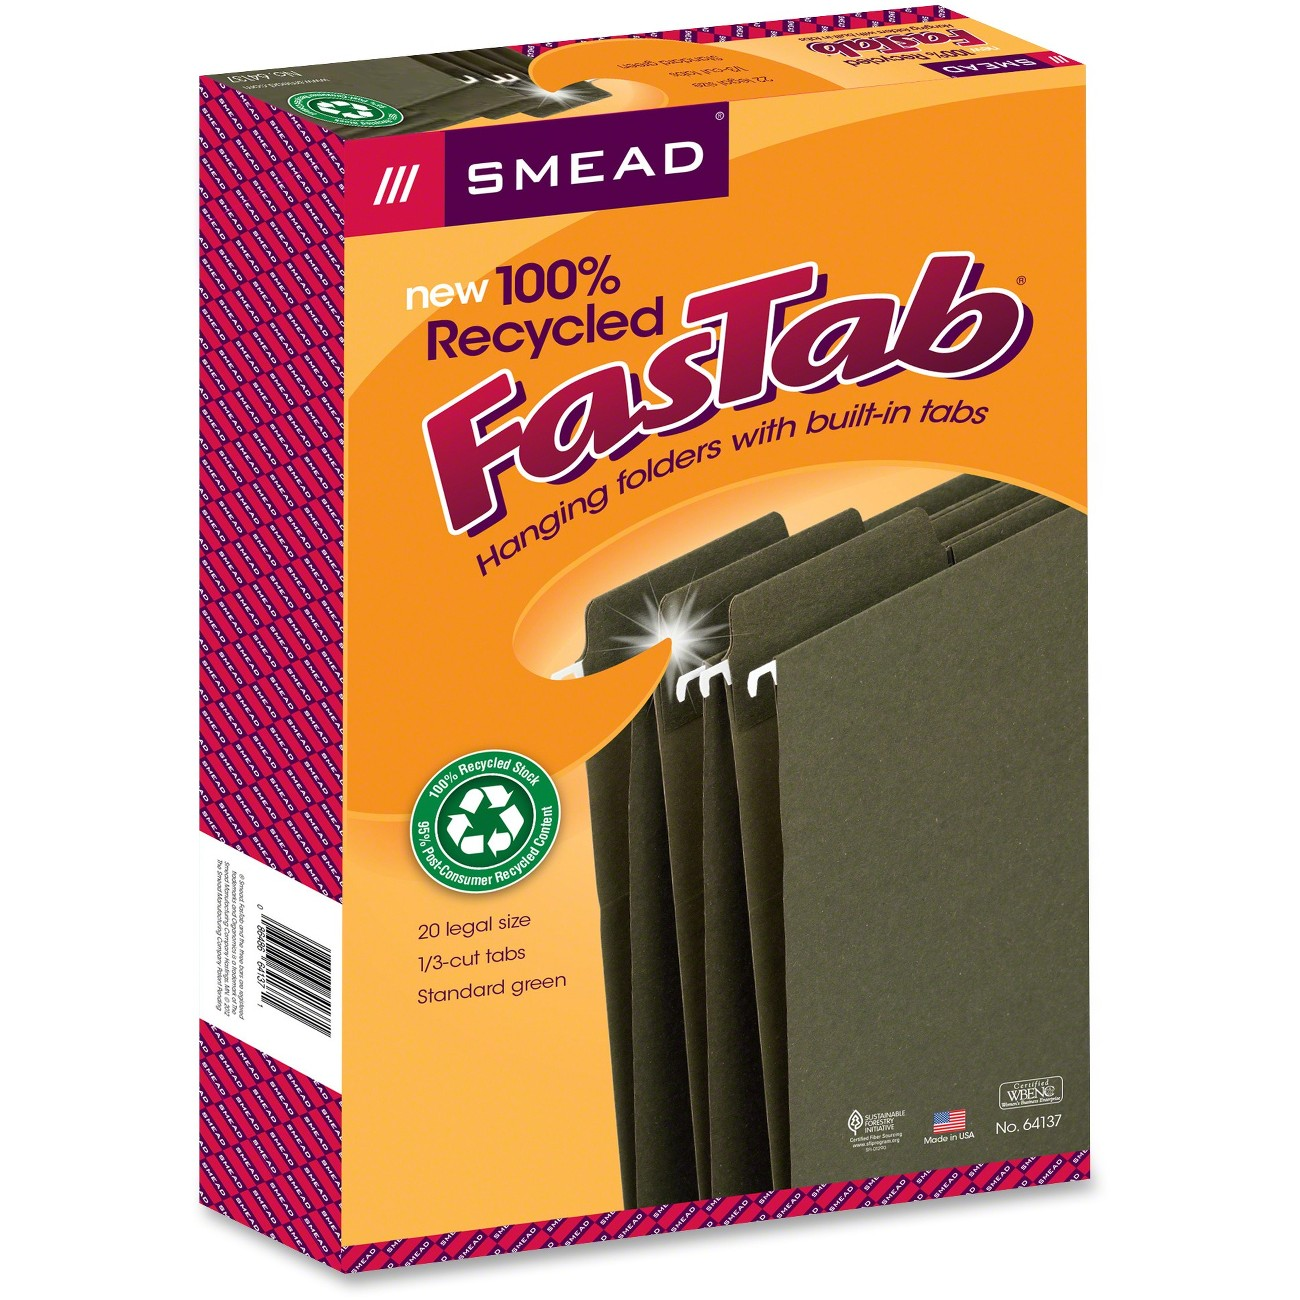 Smead 100% Recycled FasTab® Hanging